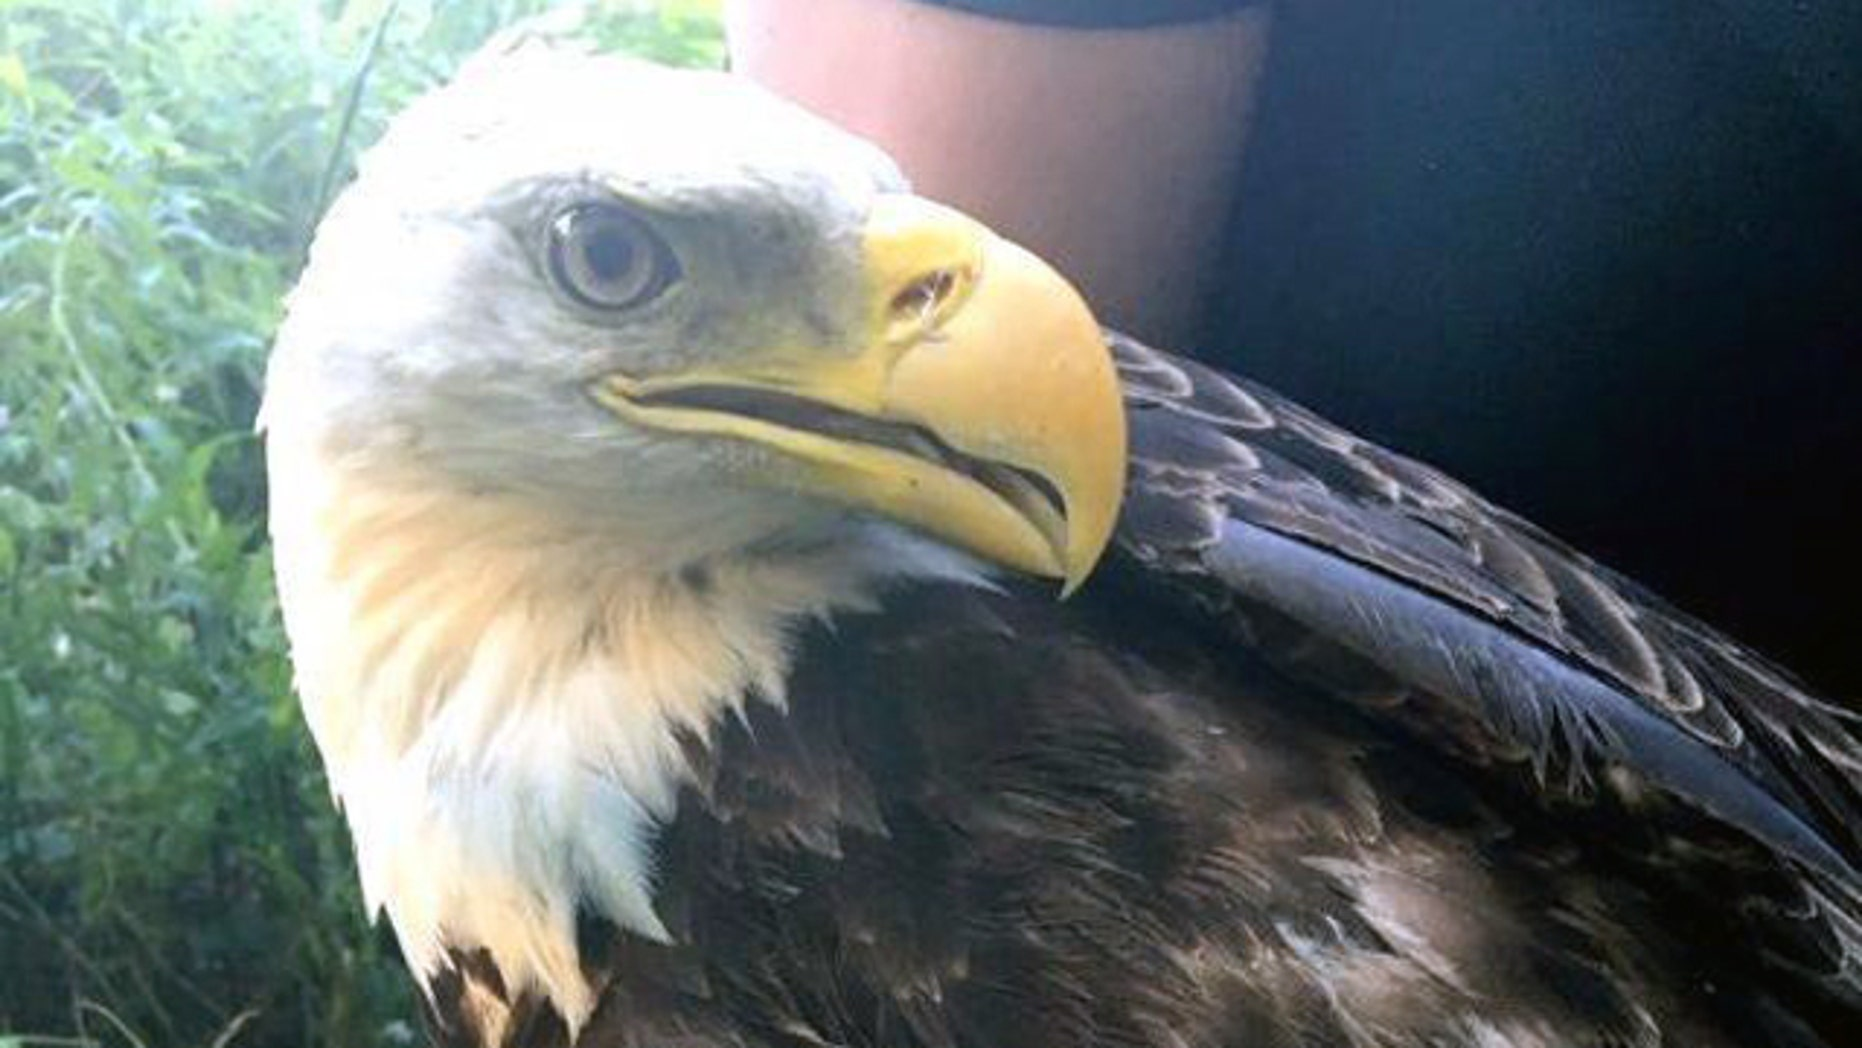 The bald eagle suffered a damaged wing when it was struck on Interstate 68.